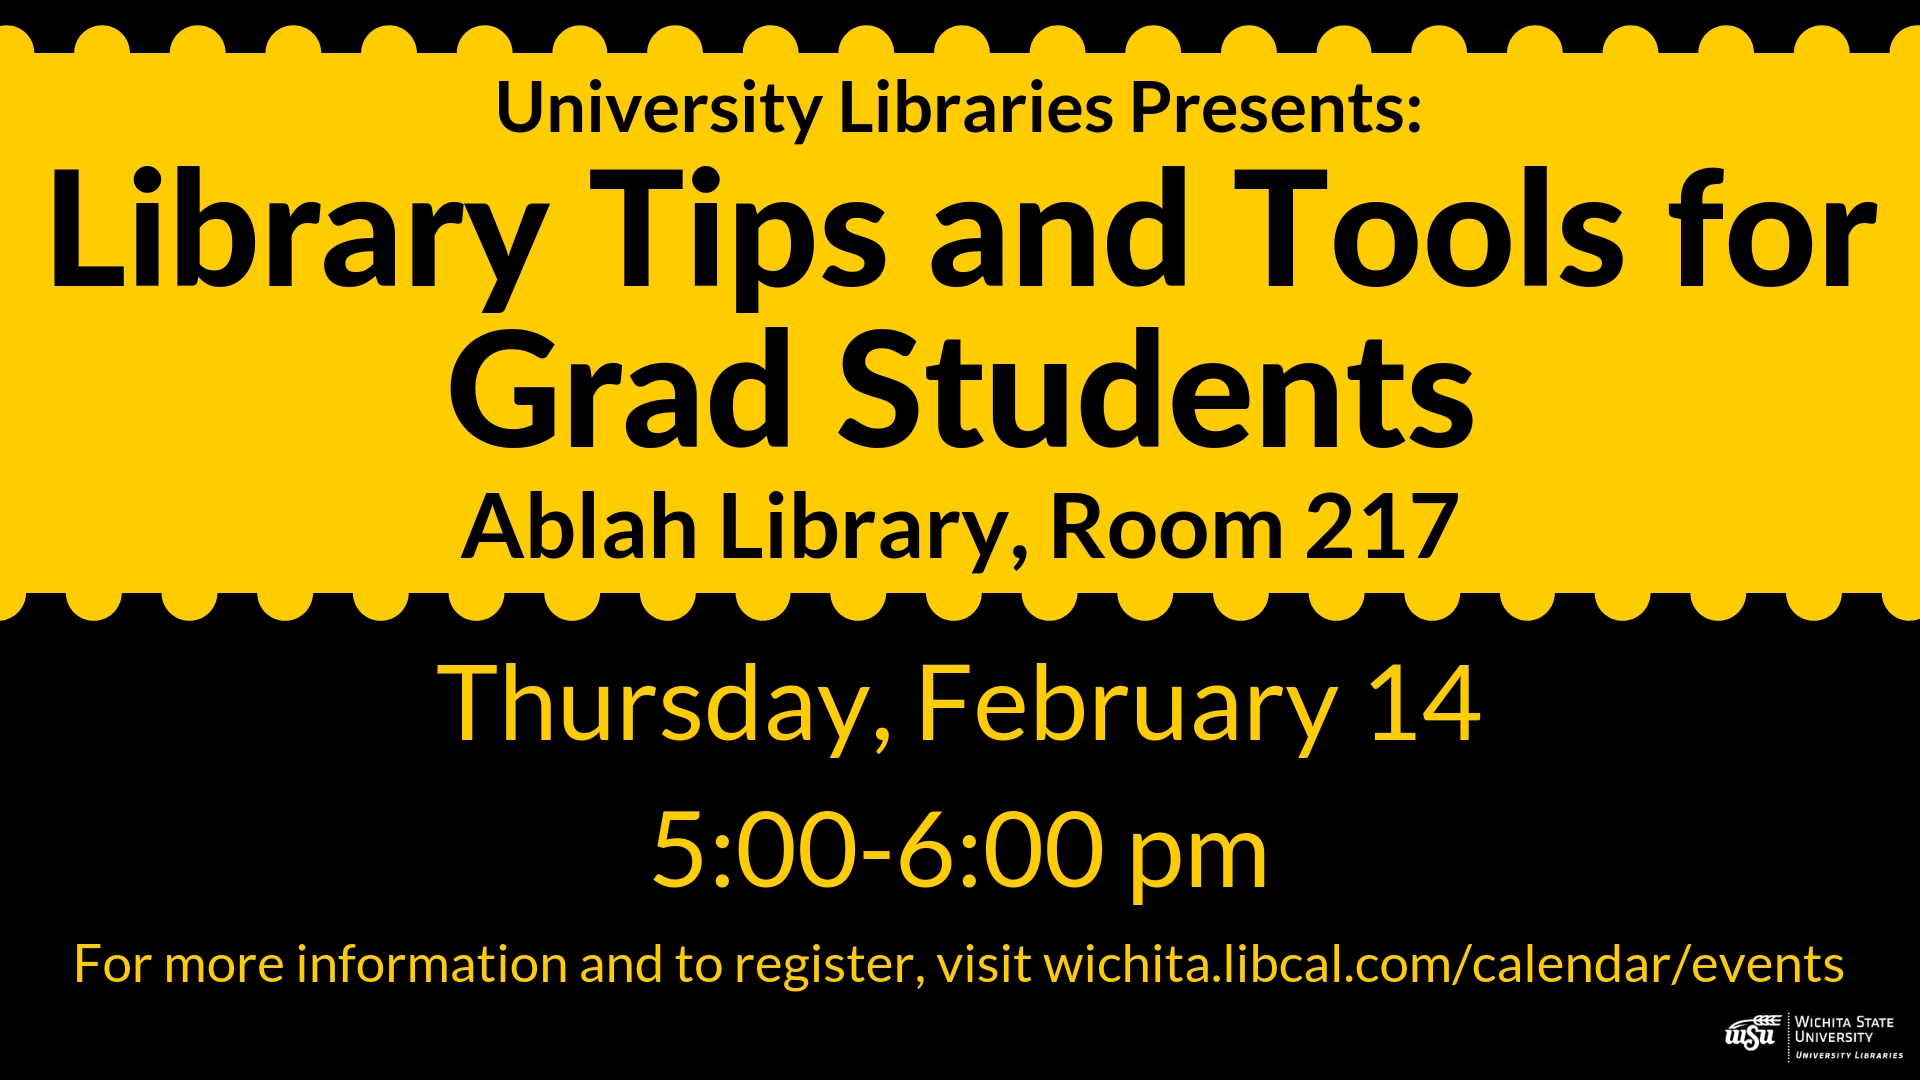 Library Tips and Tools for Grad Students